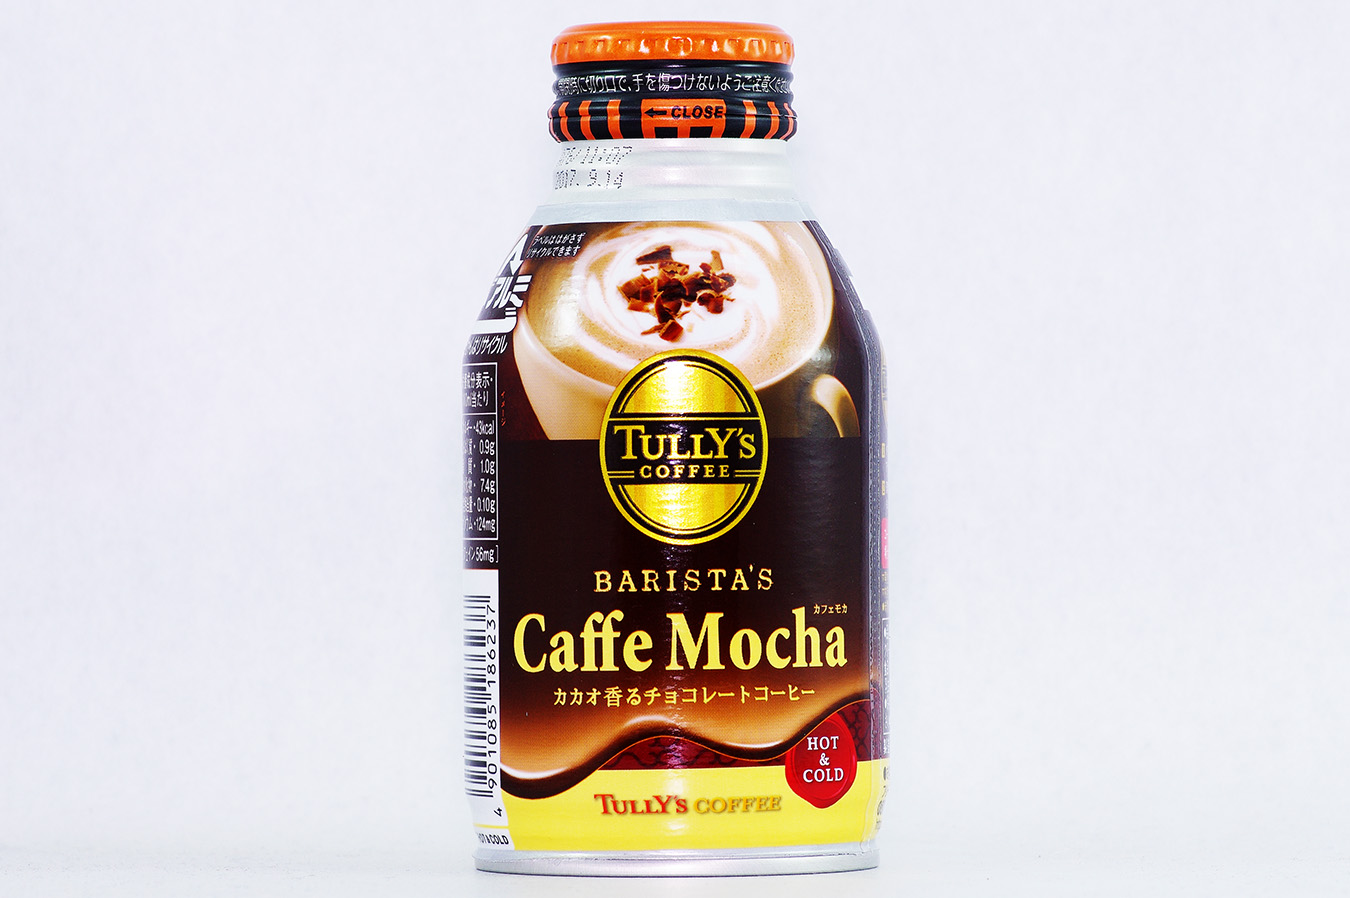 TULLY'S COFFEE BARISTA'S BARISTA'S カフェモカ 2016年10月